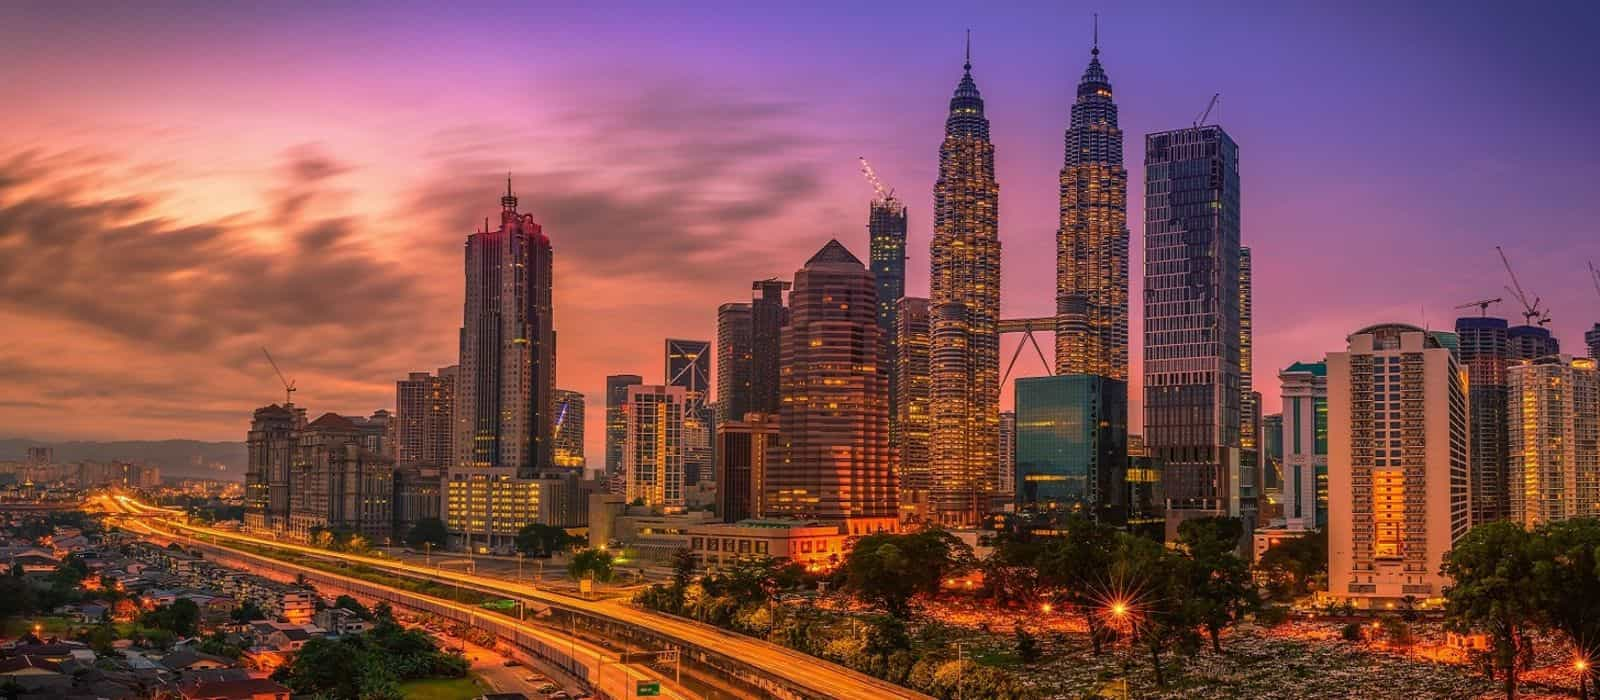 Malaysia Local Business Listing Sites List 2021